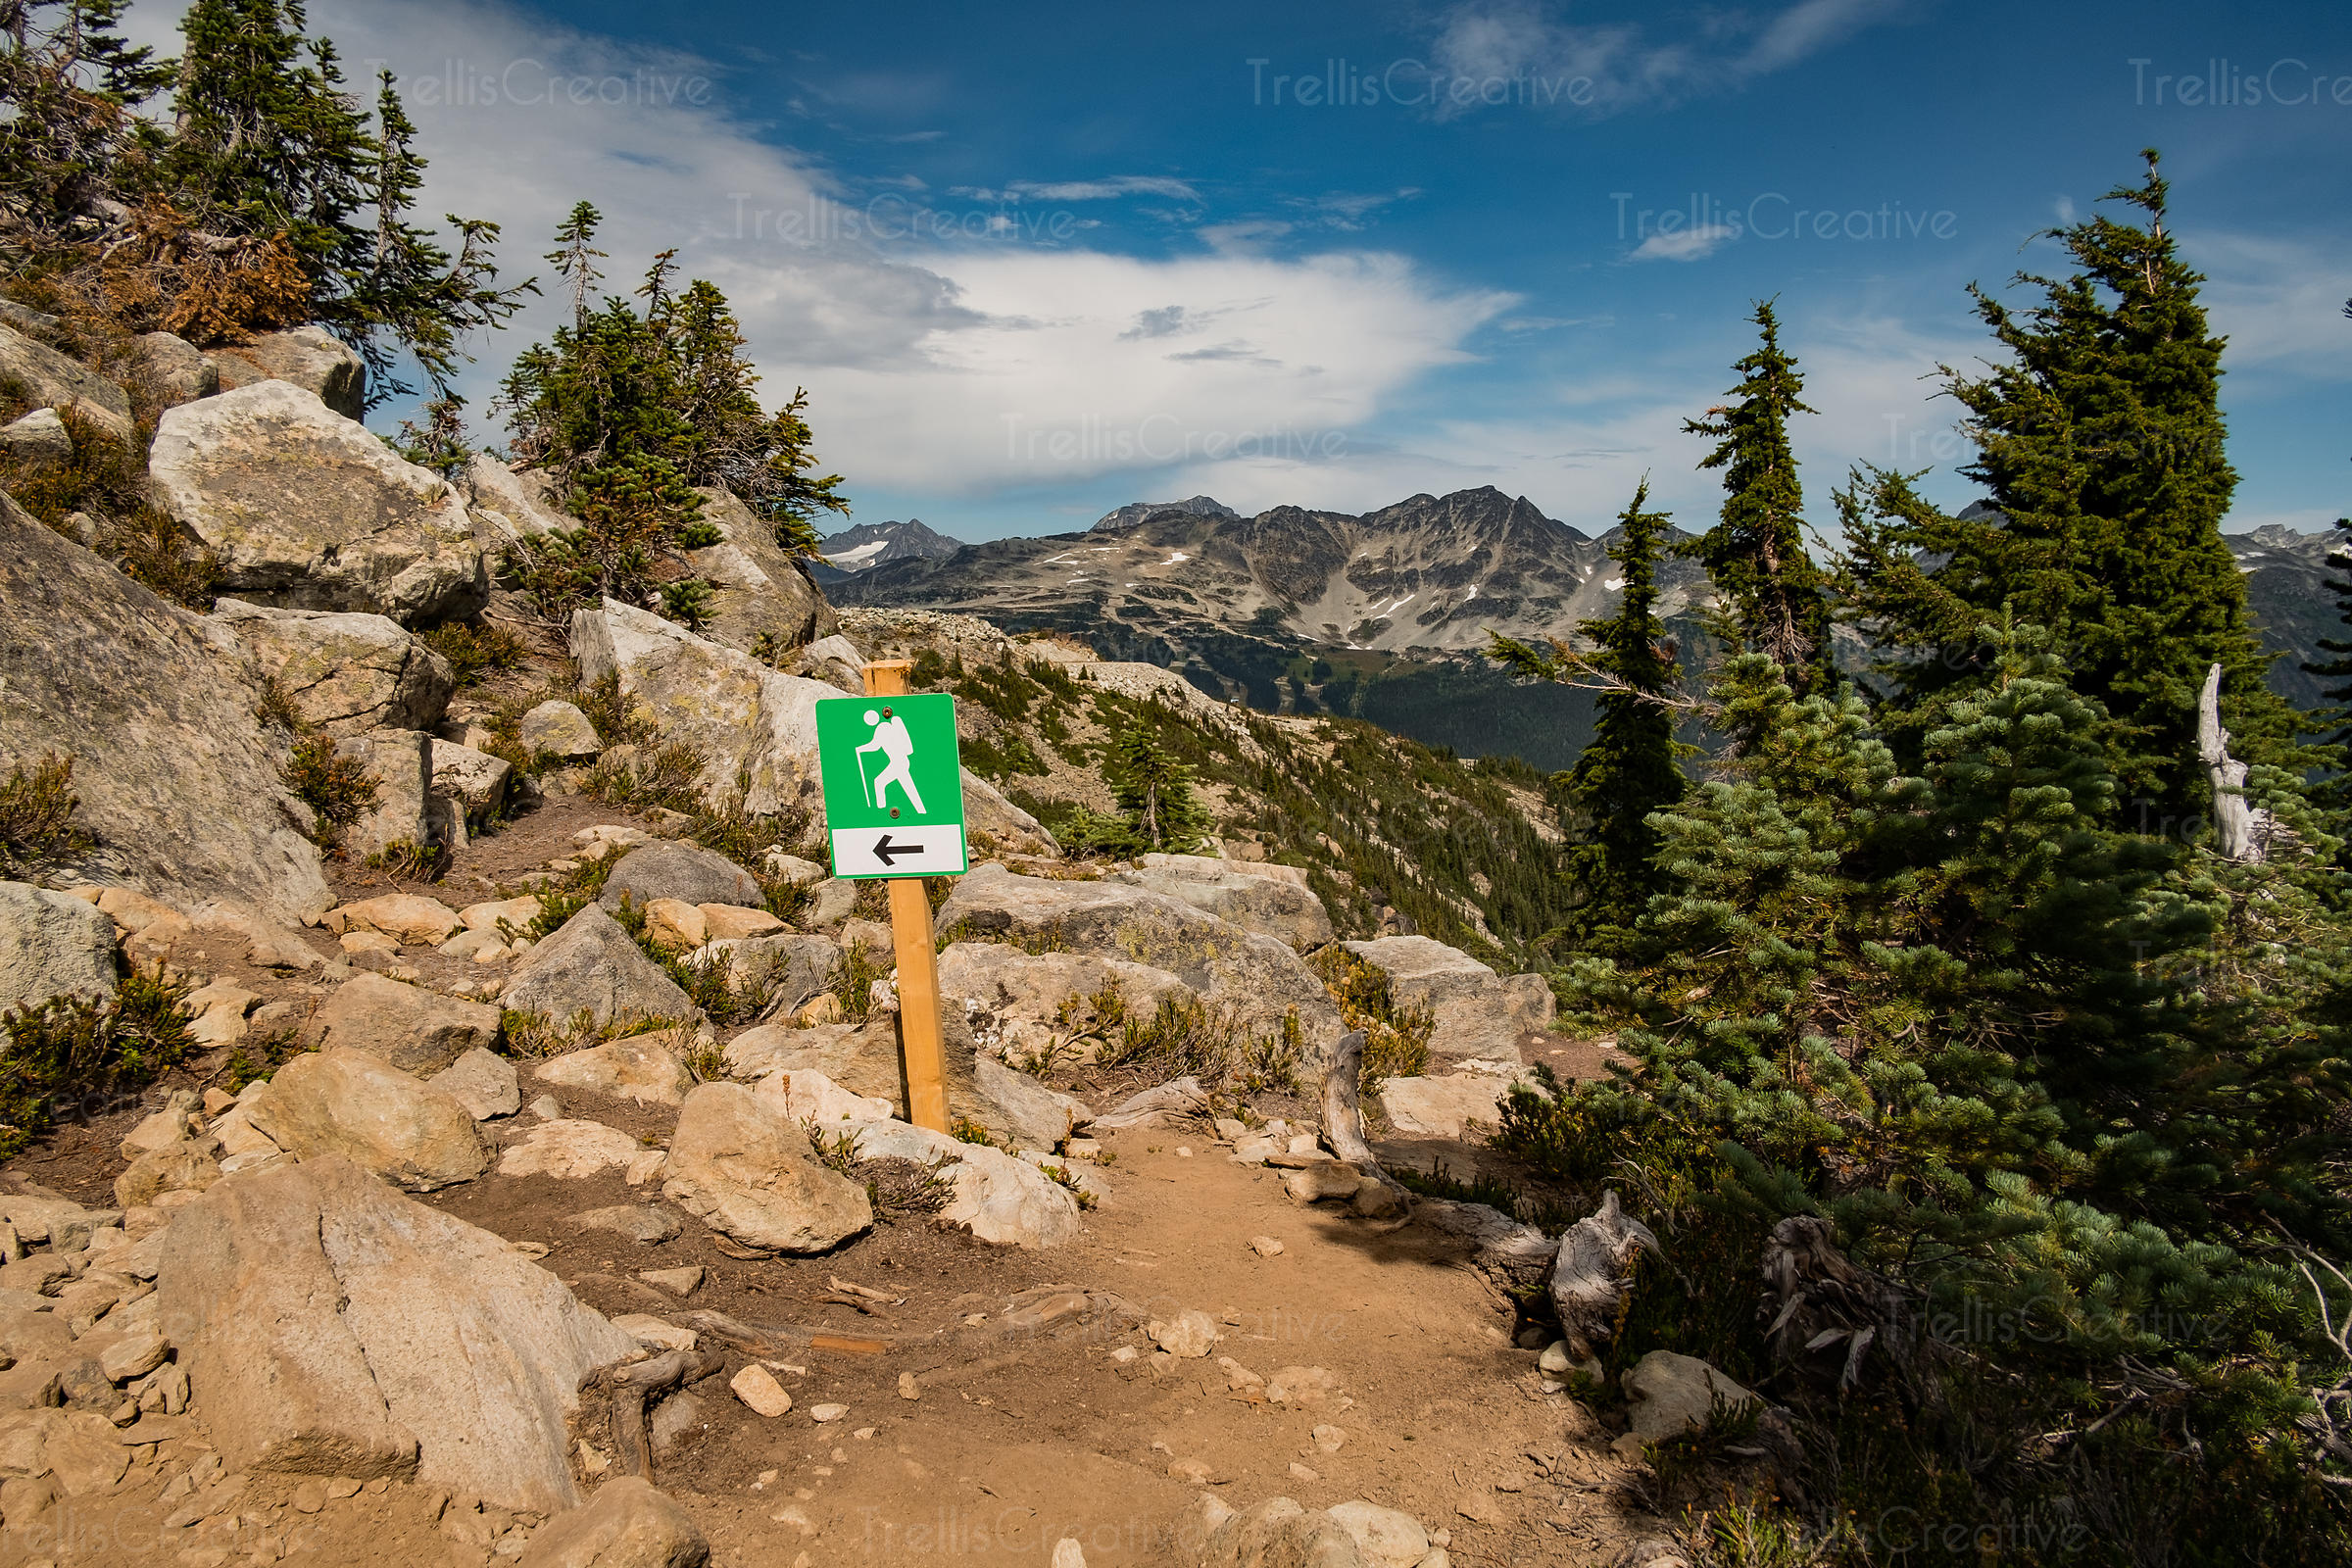 Trail marker on rugged hiking trail leads the way, Blackcomb Mountain, Whistler, Canada.